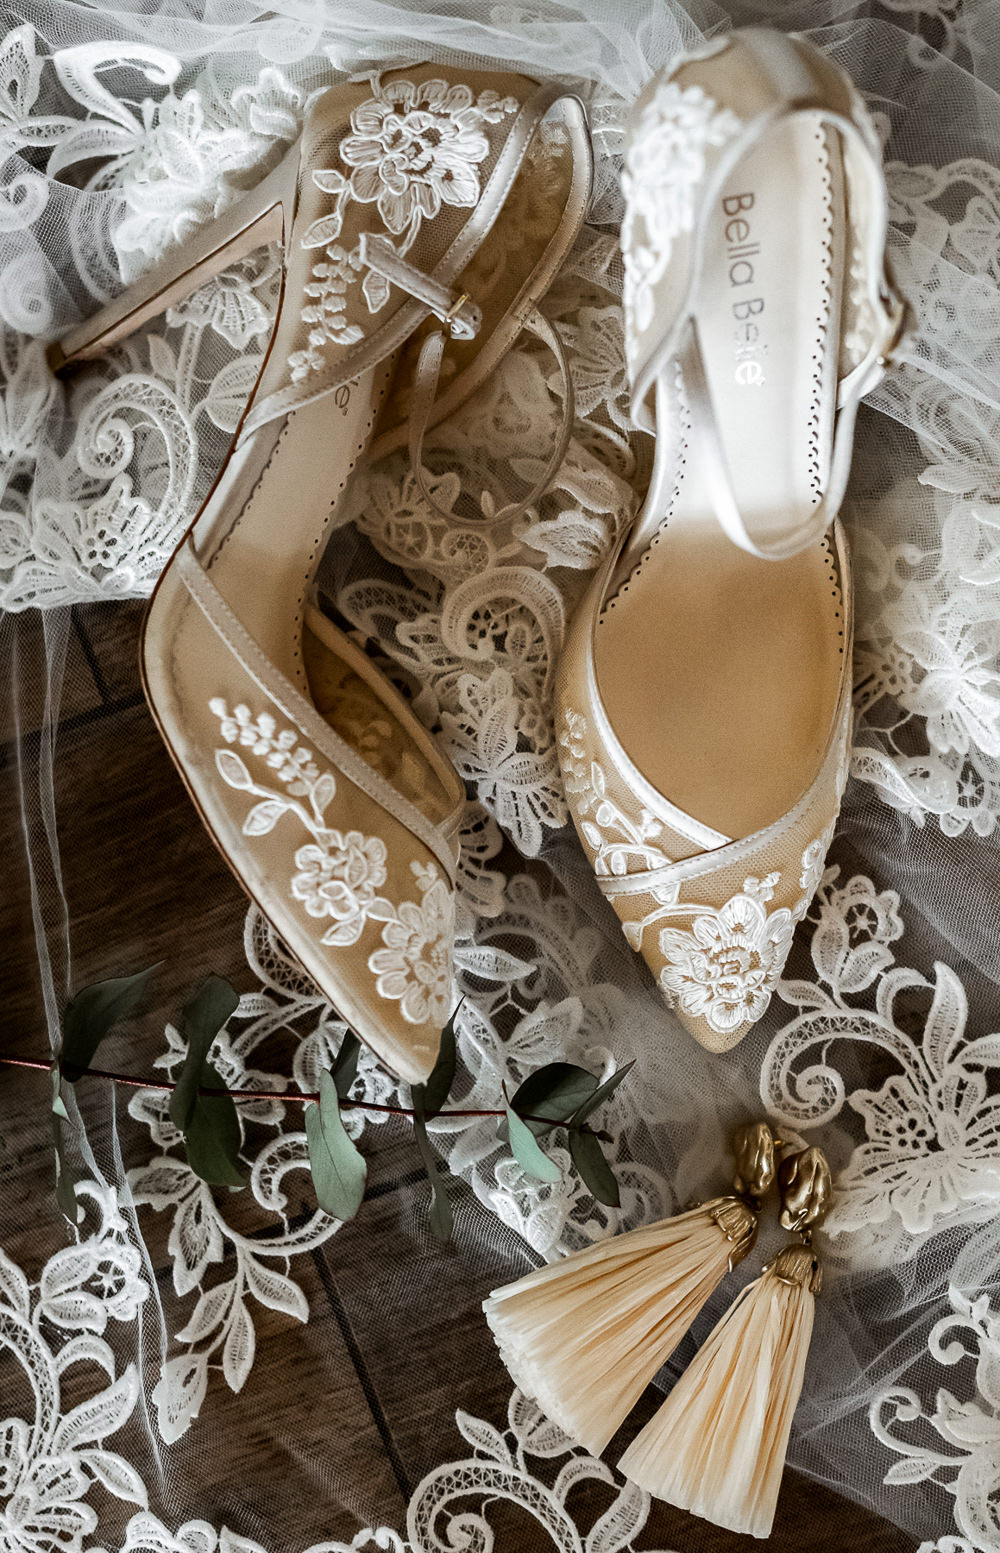 Lace Shoes Bride Bridal Marbella Elopement Wedding Nora Photography